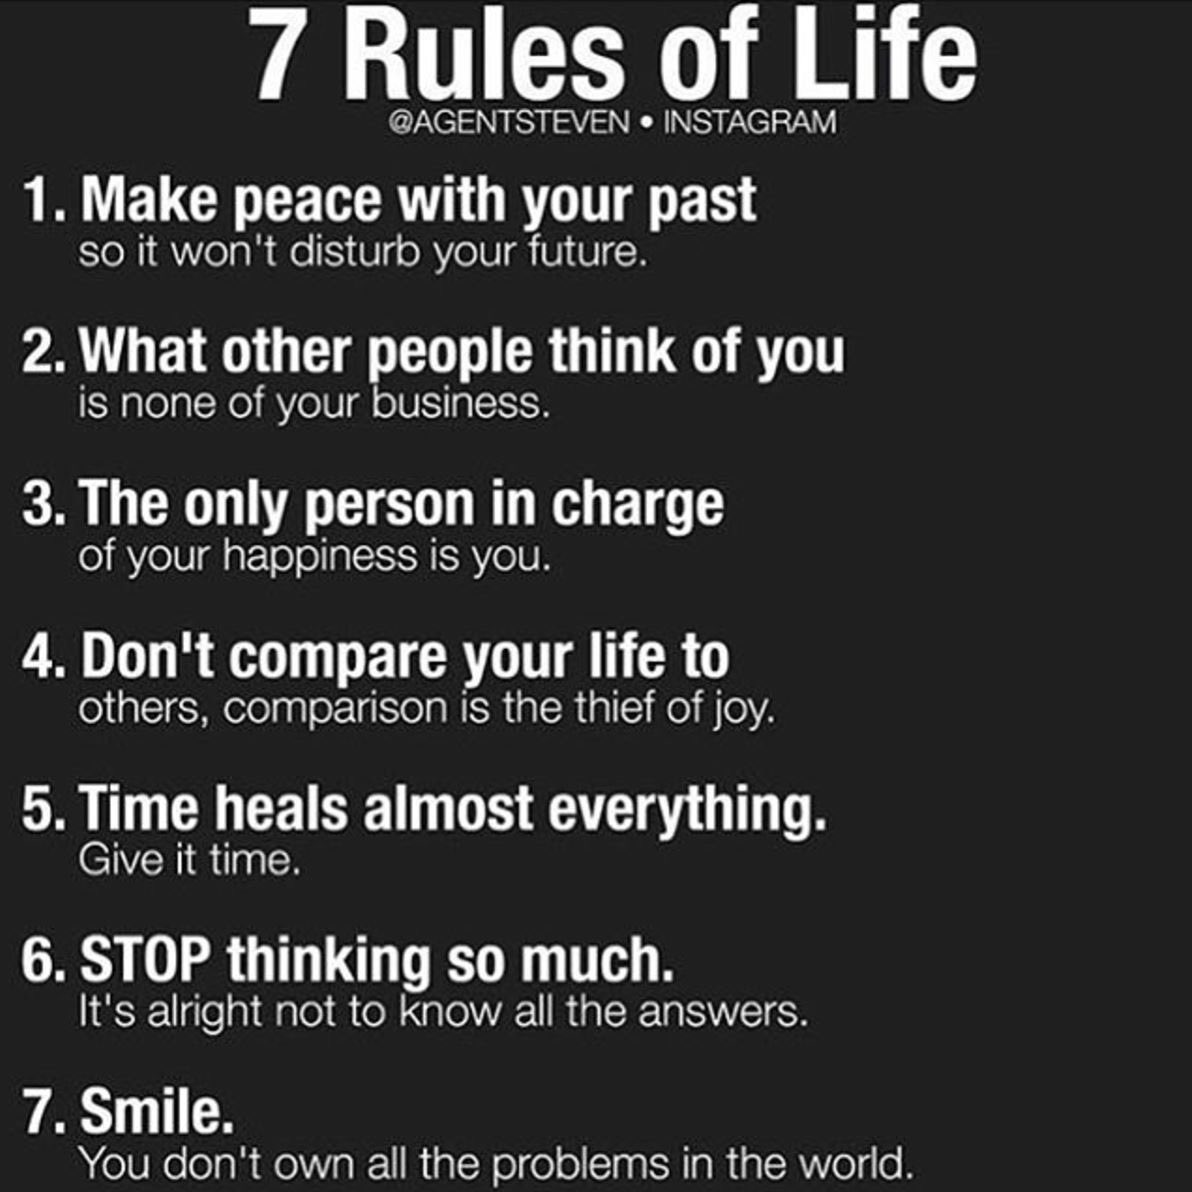 [Image] 7 rules of life